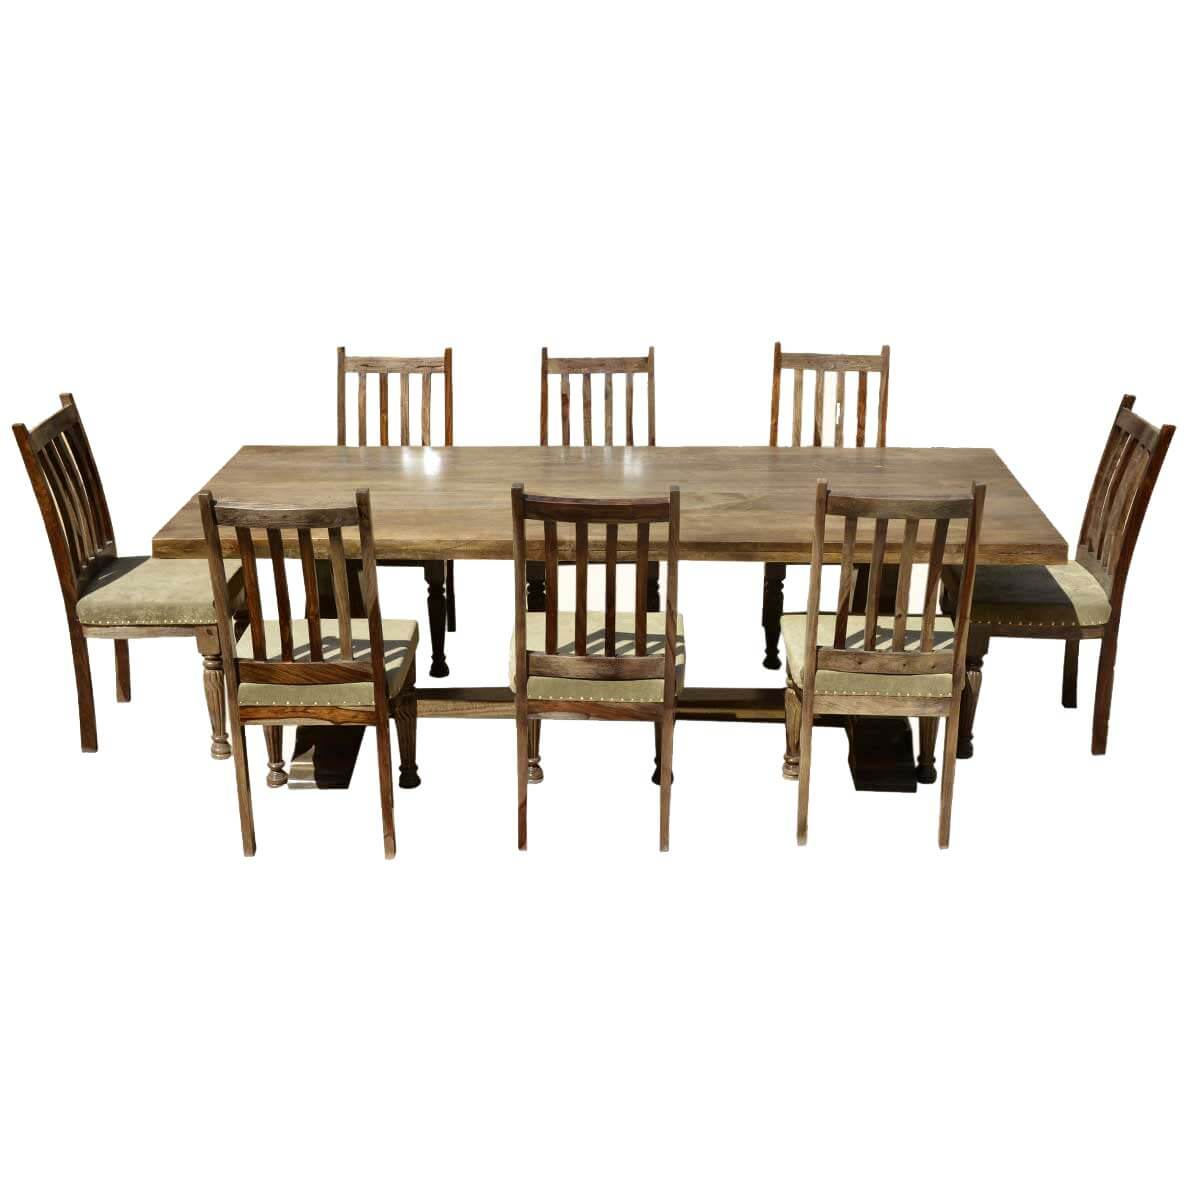 Farmhouse solid wood trestle rustic dining table for Wood dining room furniture